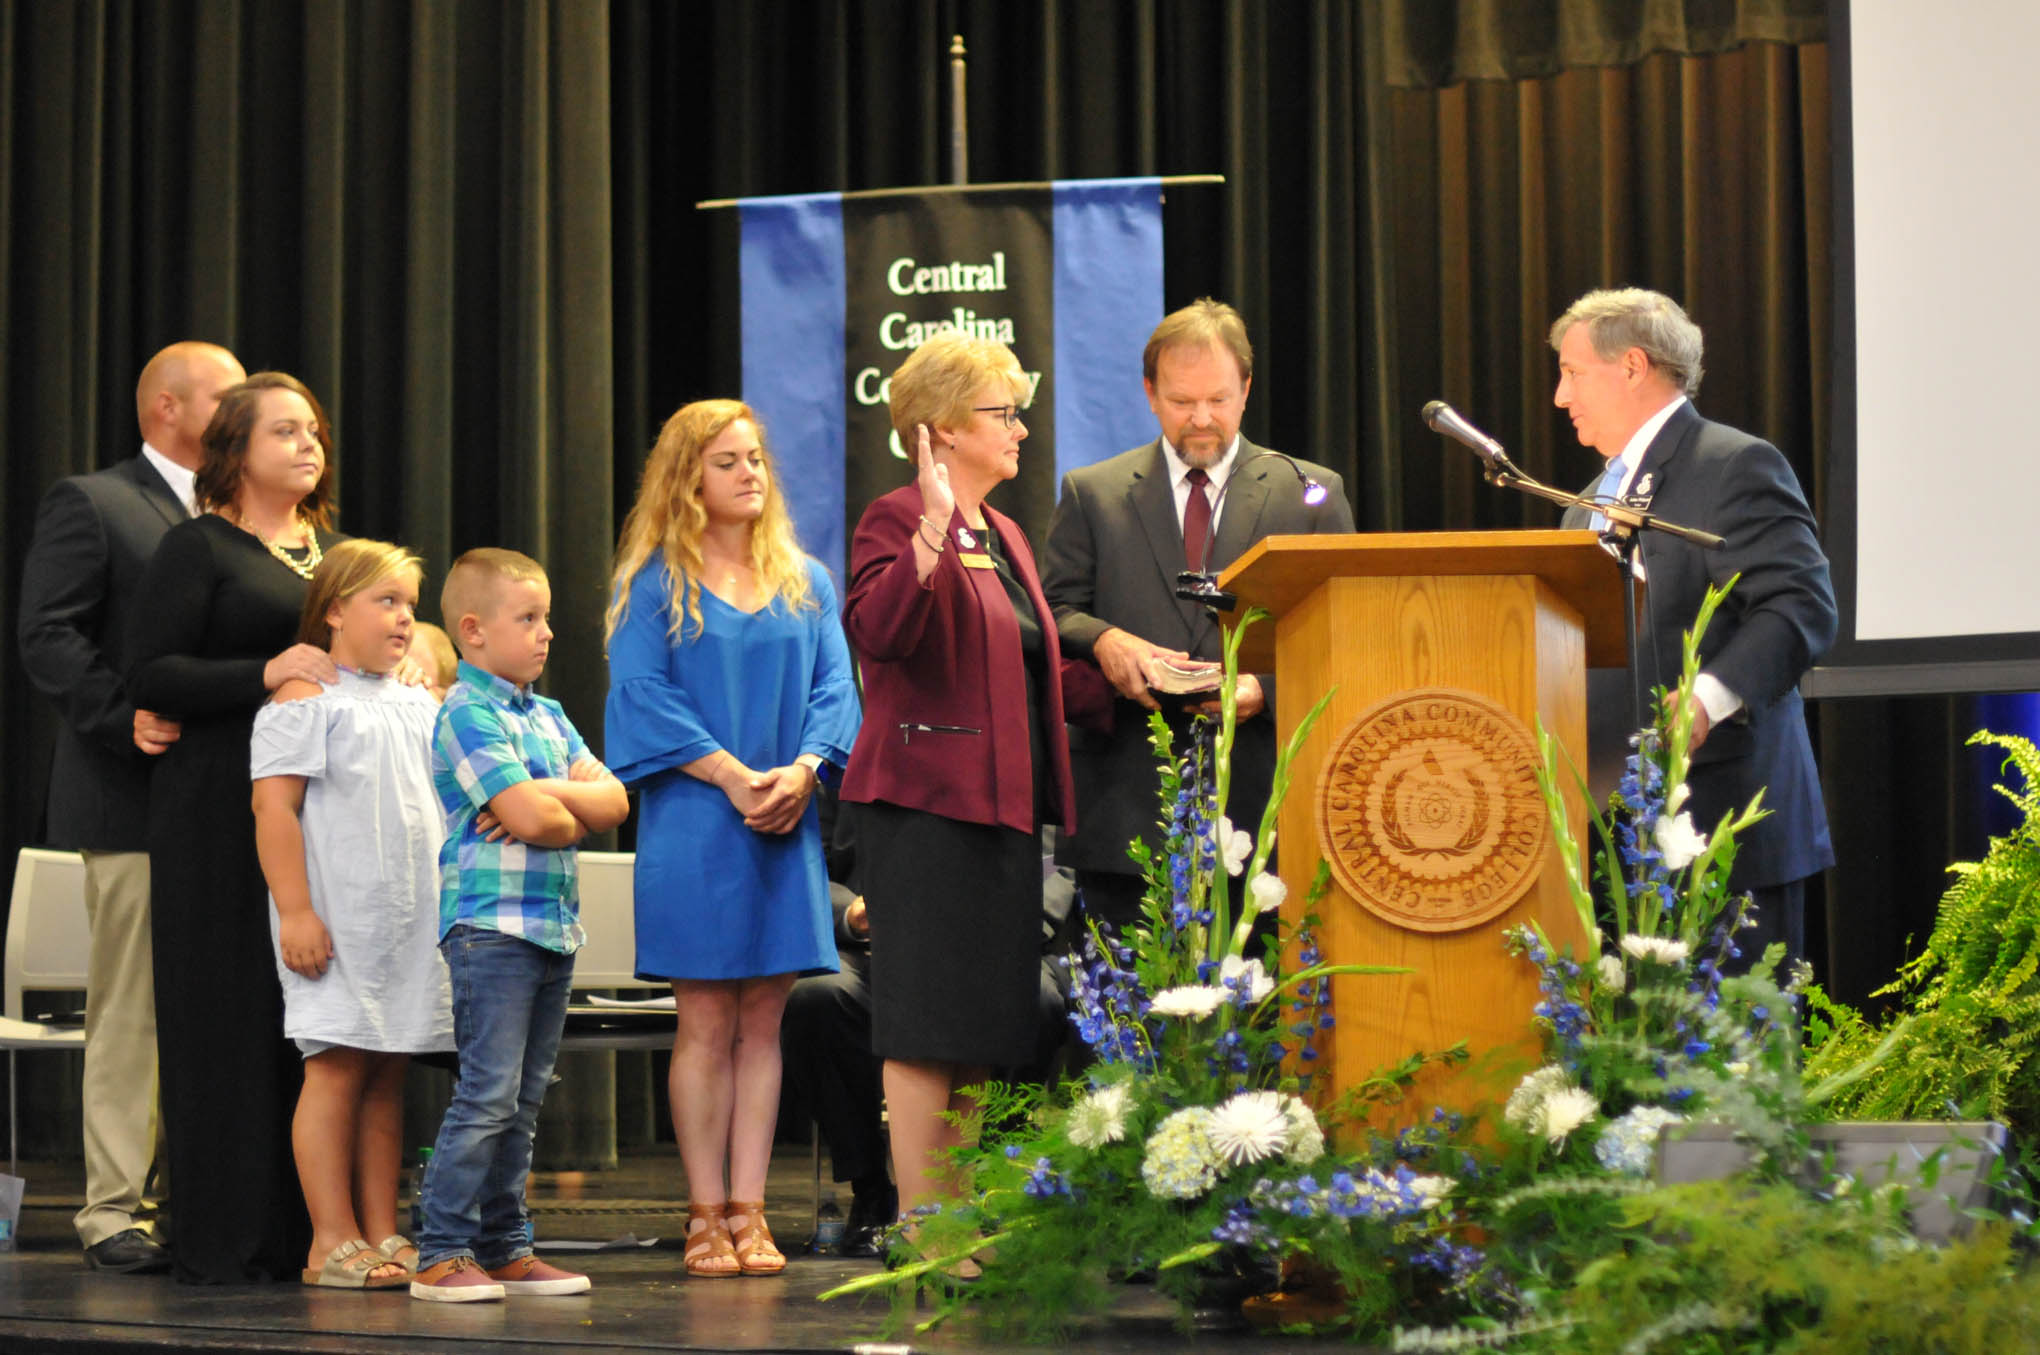 Click to enlarge,  Central Carolina Community College President Dr. Lisa M. Chapman receives the Oath of Office from Julian Philpott, Chairman of the CCCC Board of Trustees, as Dr. Chapman's family joins her on stage for her Installation as CCCC President on Sept. 26.